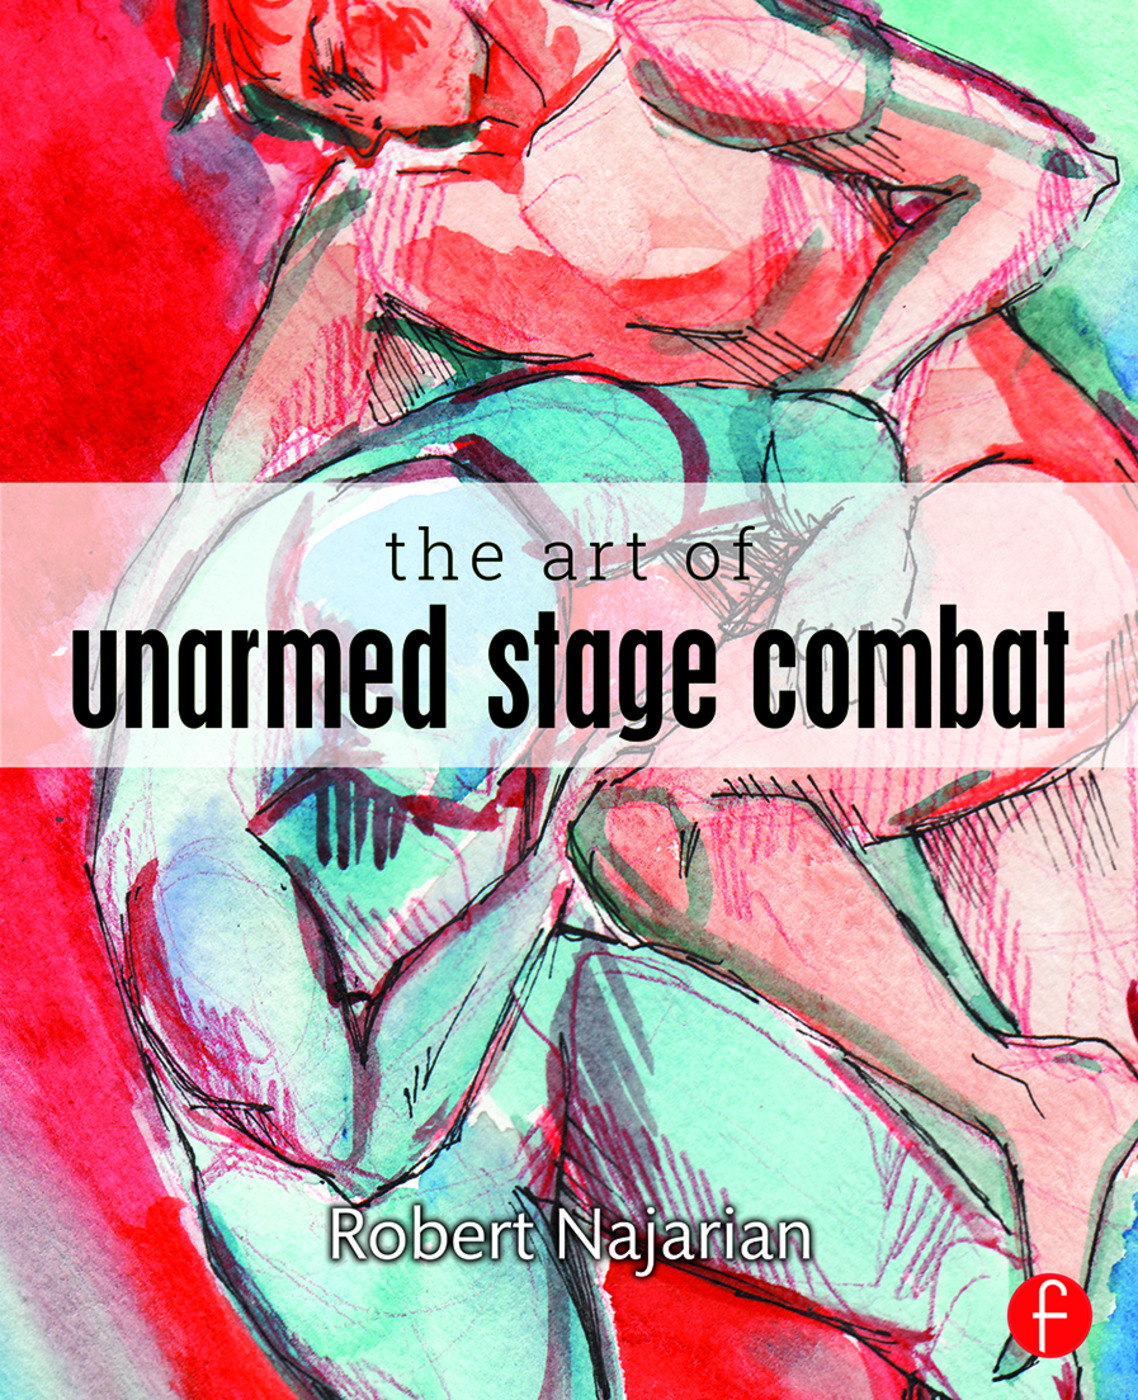 The Art of Unarmed Stage Combat book cover